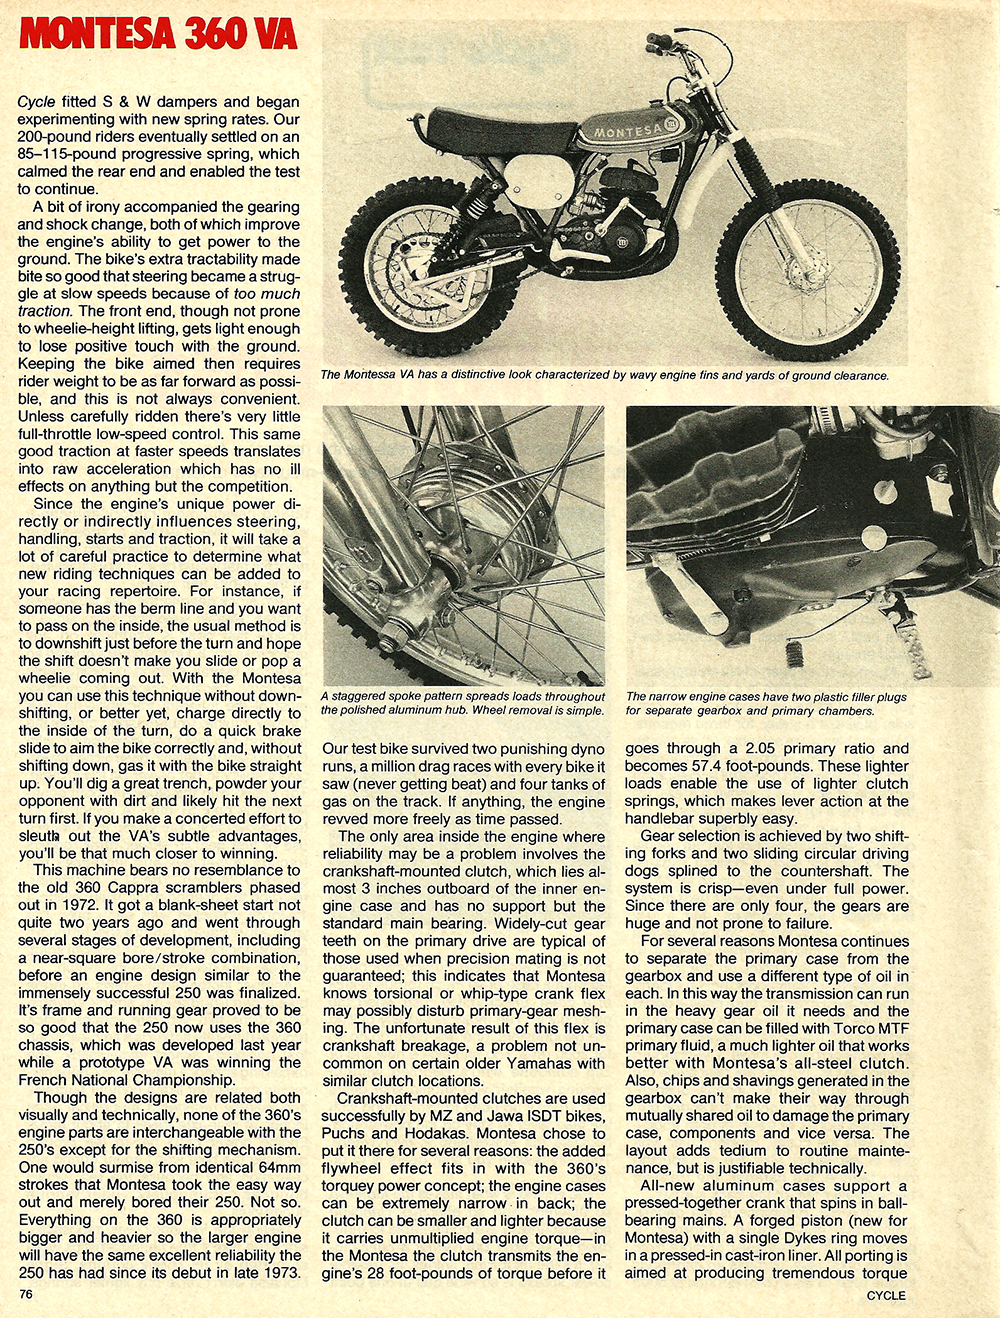 1976 Montesa 360 VA road test 3.jpg